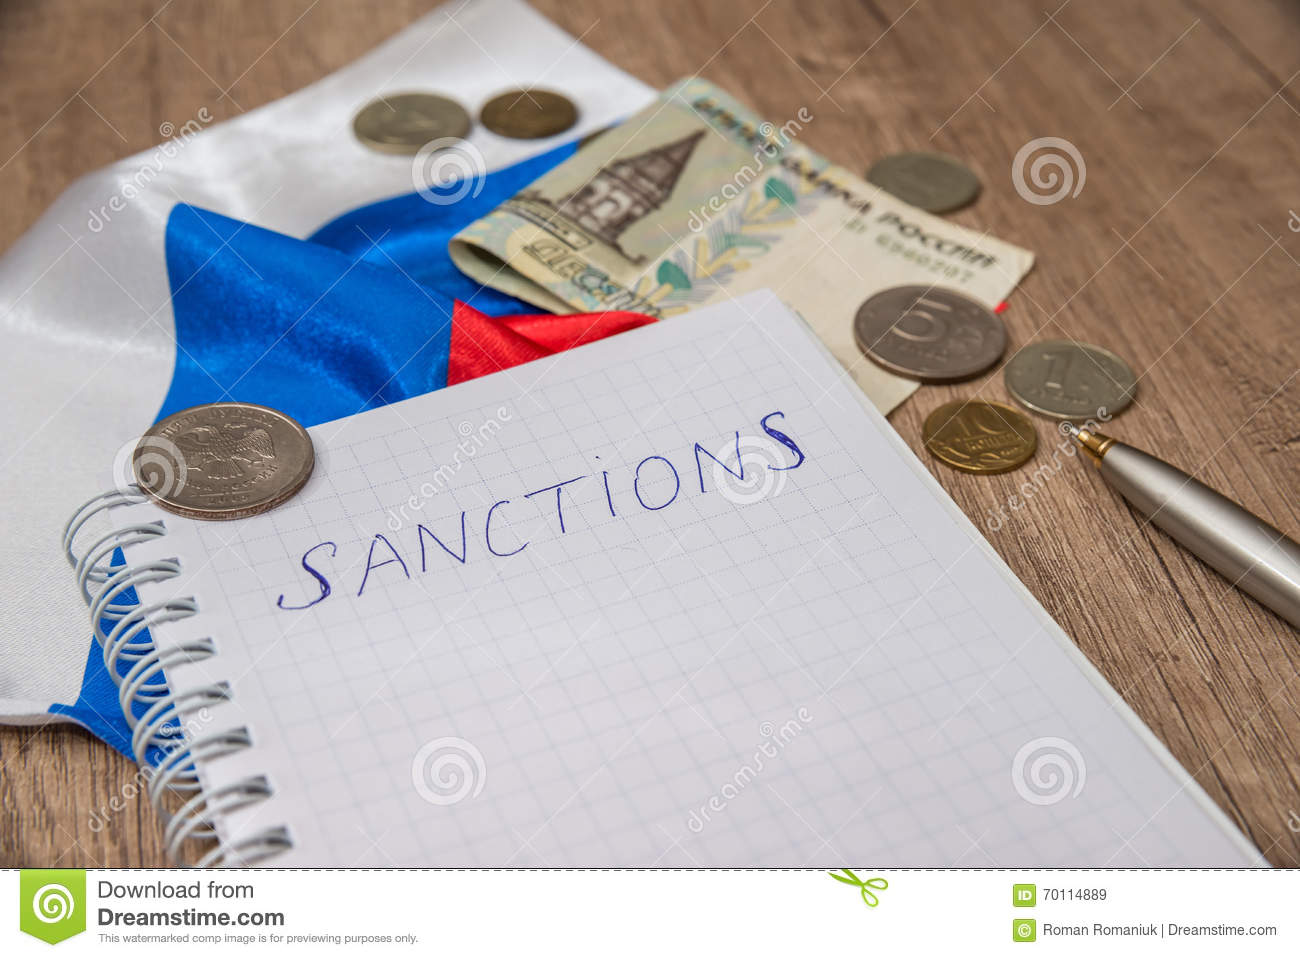 Sanctions for russia